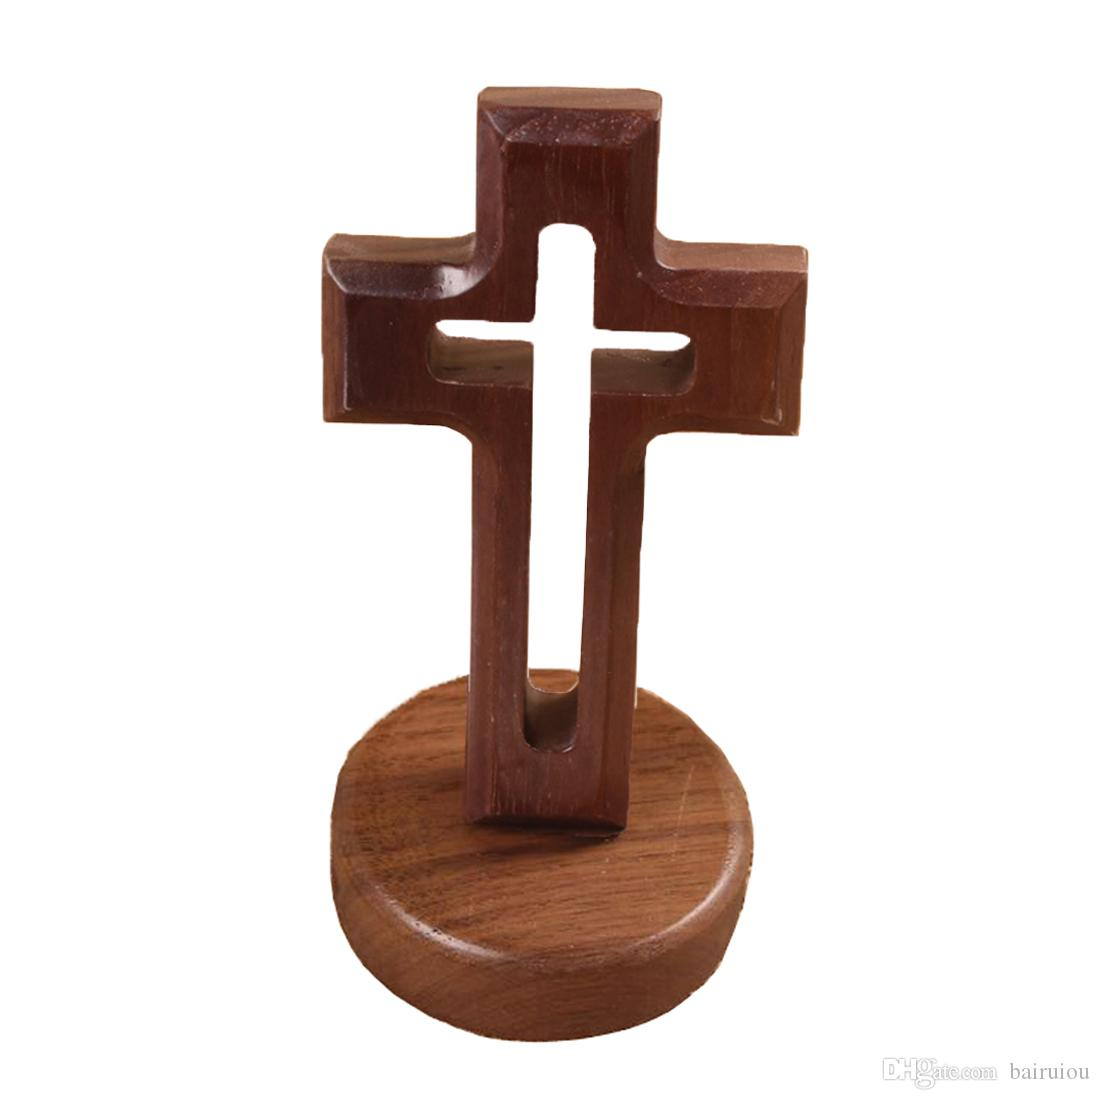 Bairuiou wooden cross standing hand made ornaments jesus for Cheap wooden crosses for crafts